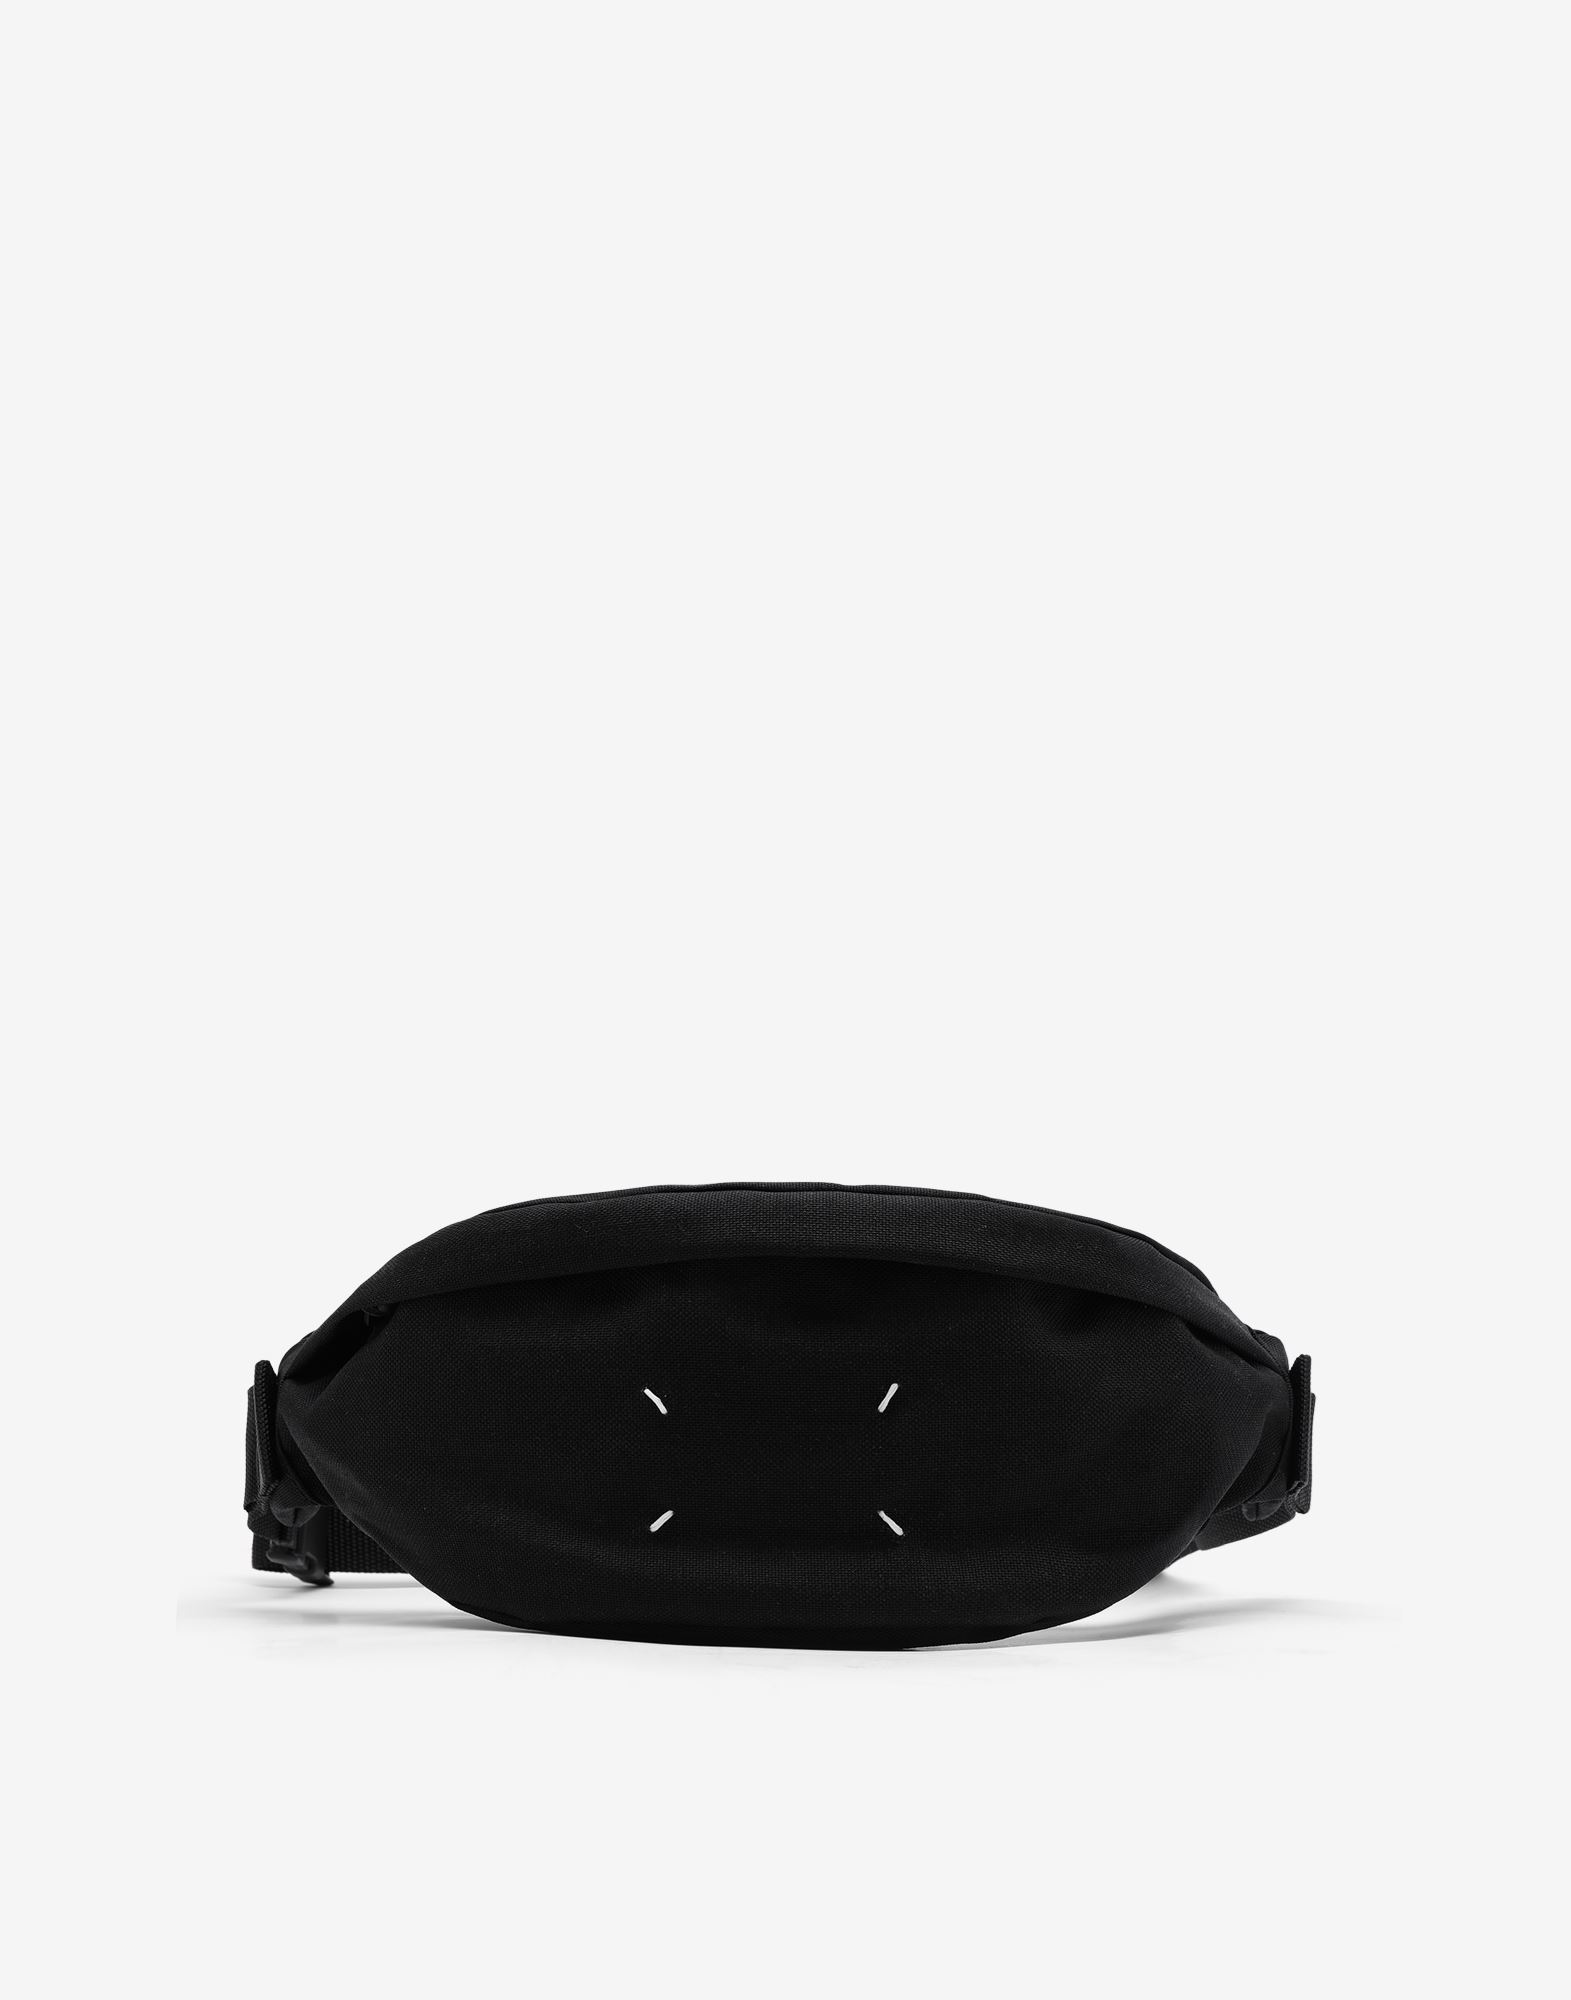 MAISON MARGIELA 4-STITCHES BUMBAG Bum bag Man f